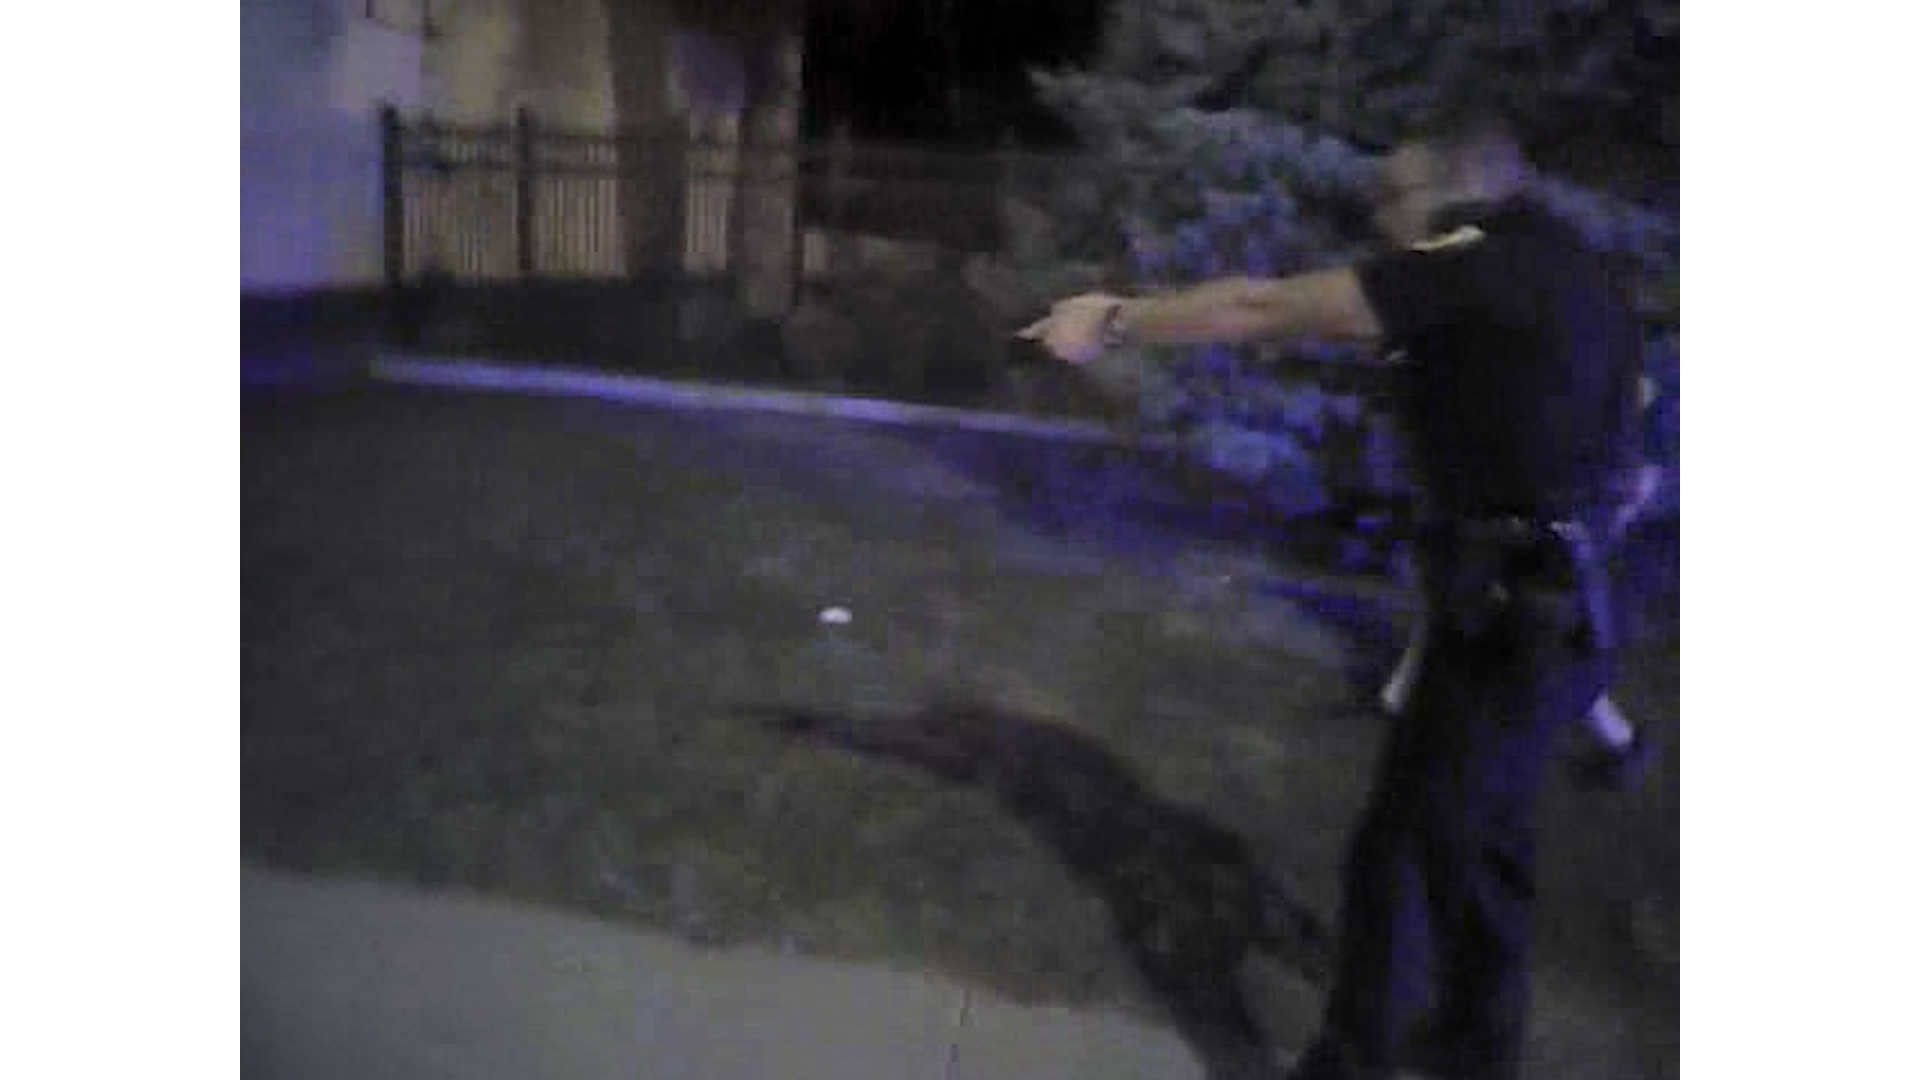 Police bodycam shows officer fatally shoot a man who ran. Prosecutors say it was justified.